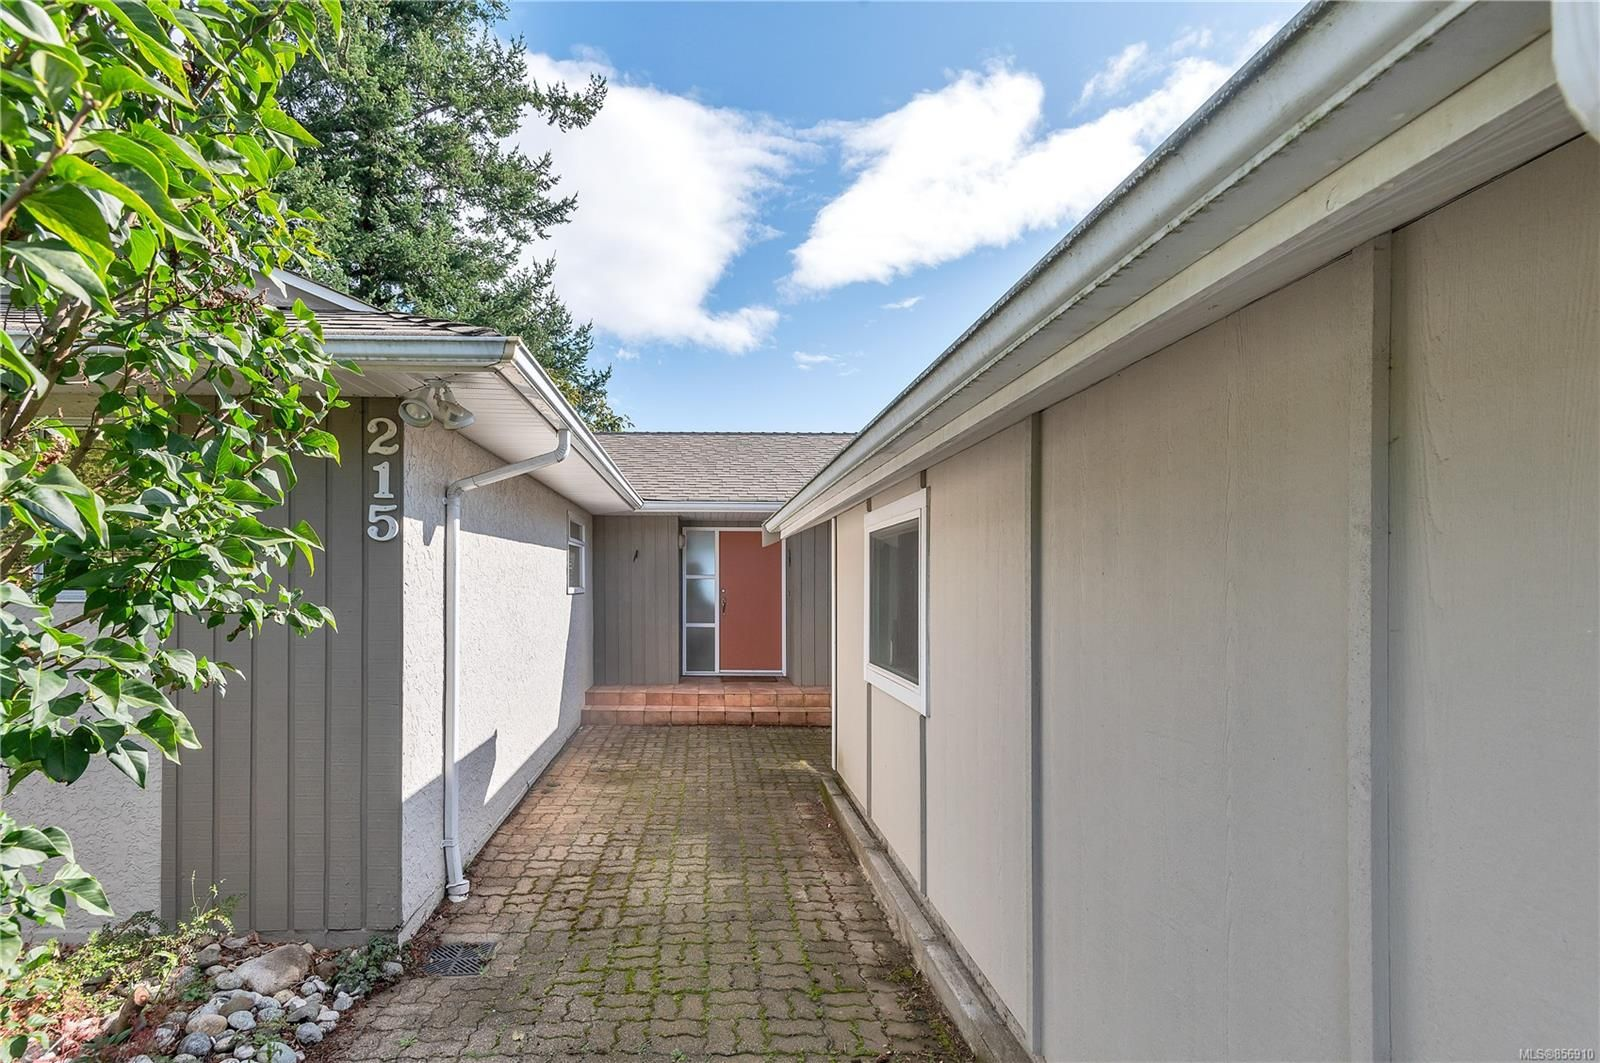 Photo 51: Photos: 215 S Alder St in : CR Campbell River Central House for sale (Campbell River)  : MLS®# 856910